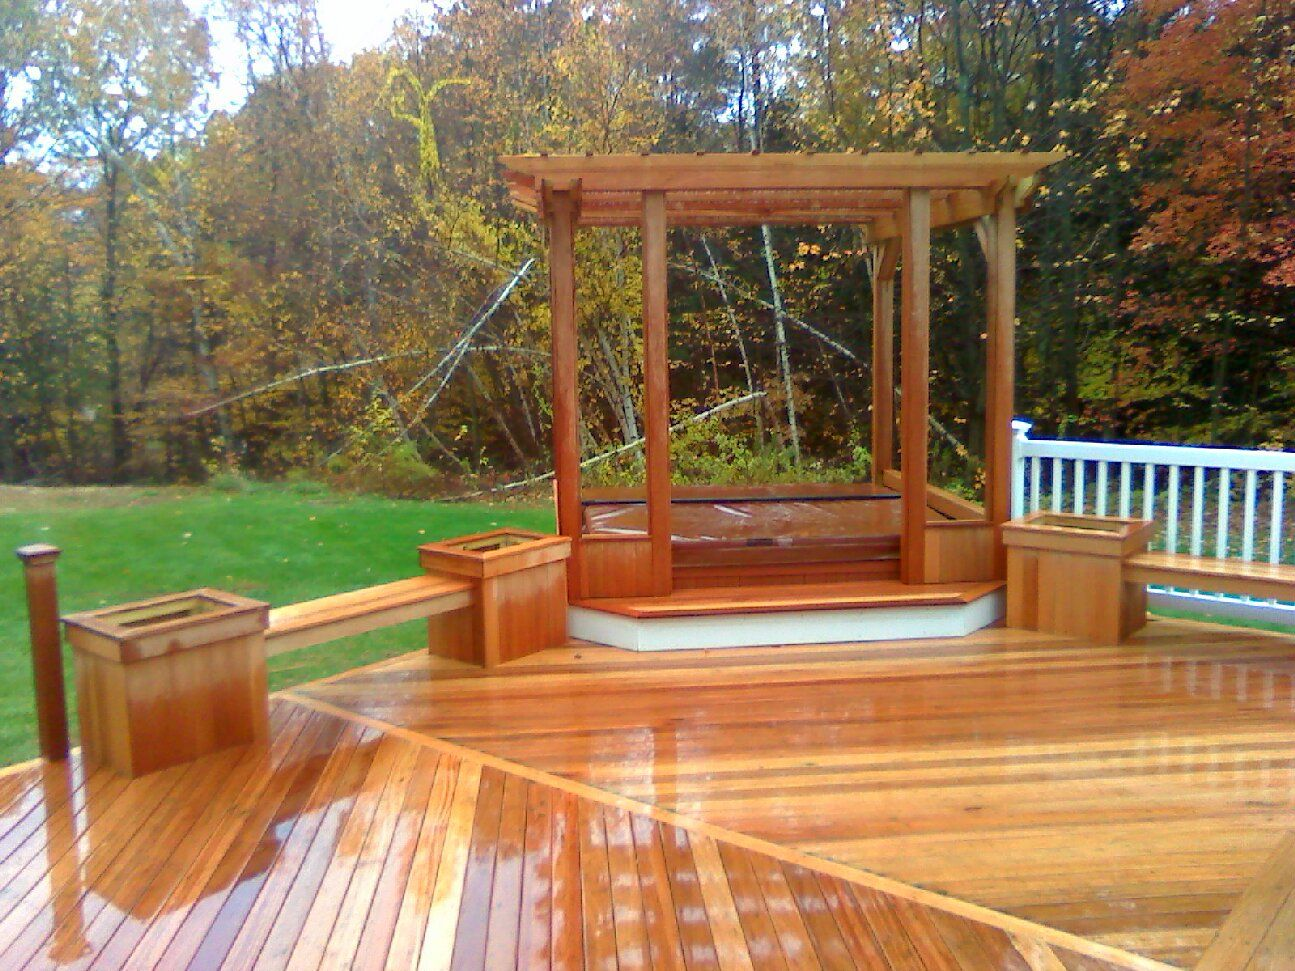 Decks with hot tubs just decks mass quality affordable for Above ground pool decks with hot tub